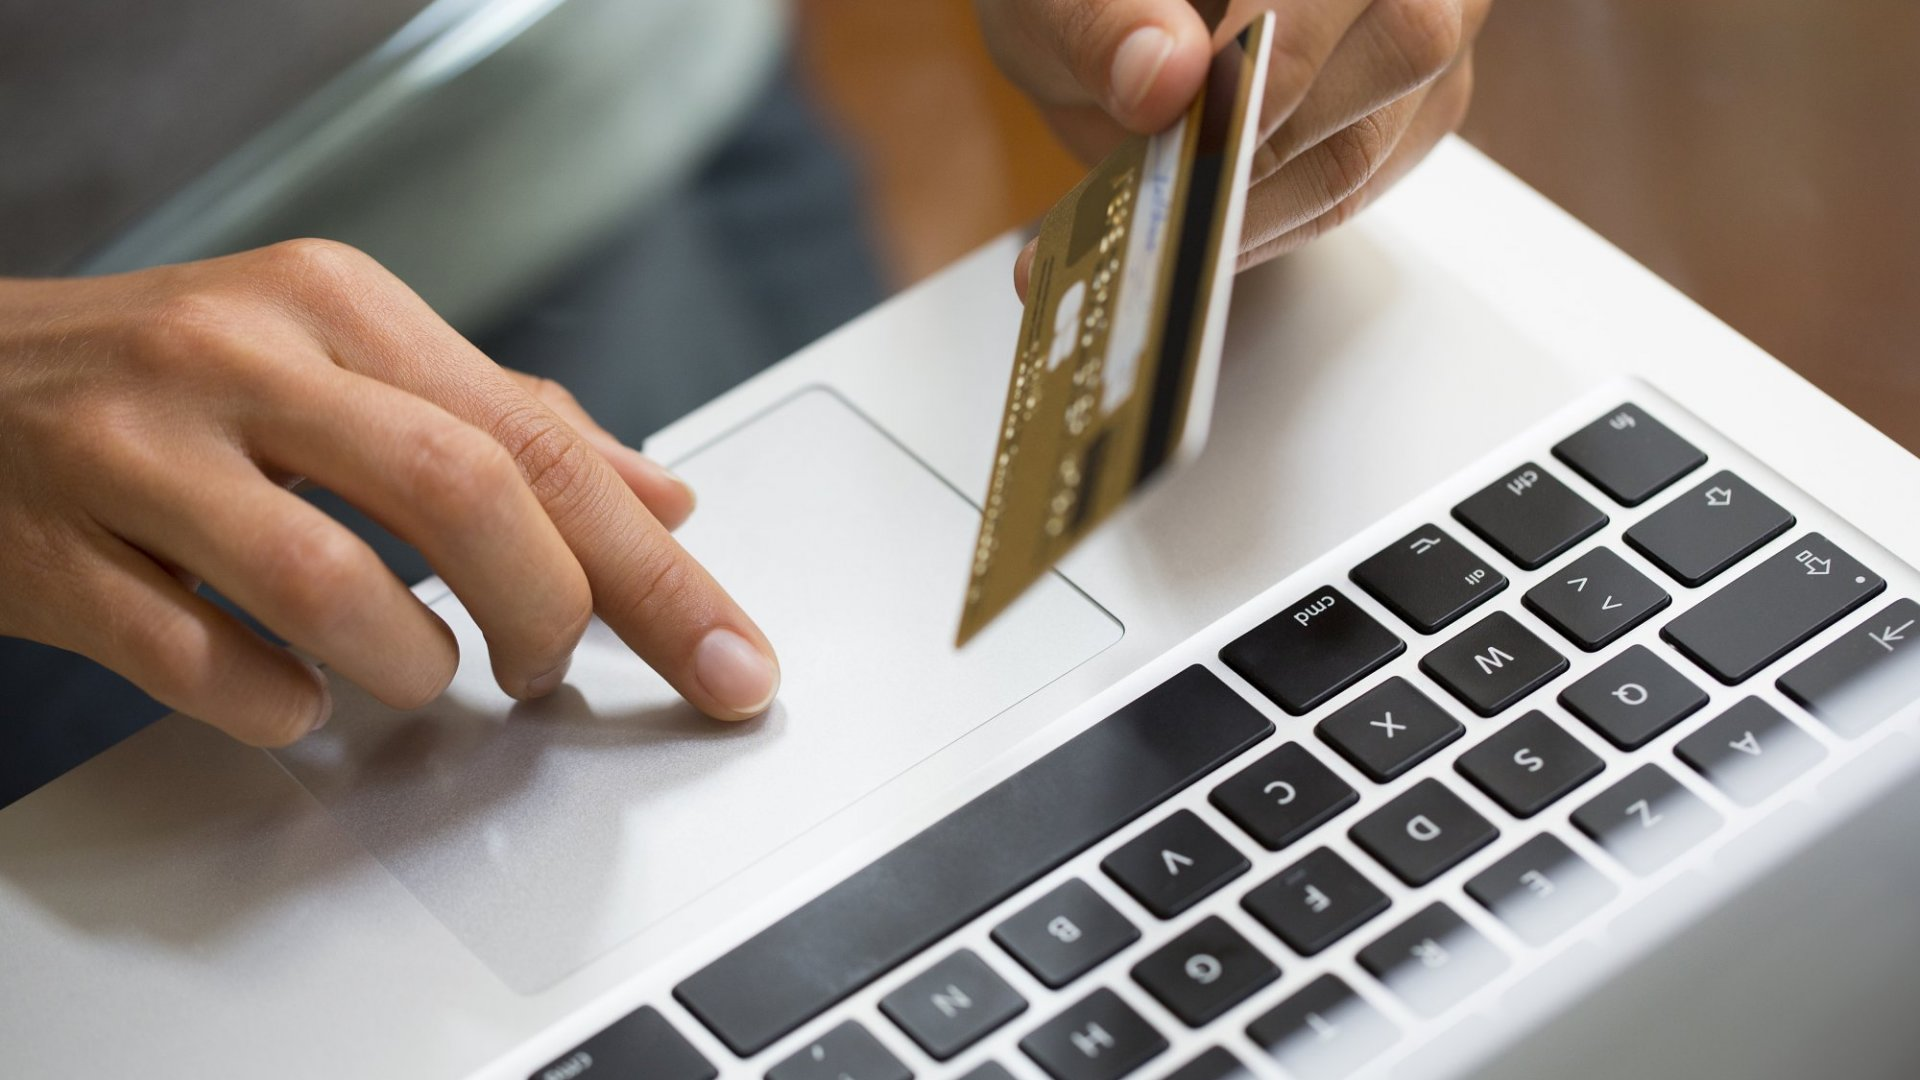 5 Things Every E-Commerce Site Should Do to Maximize Conversions